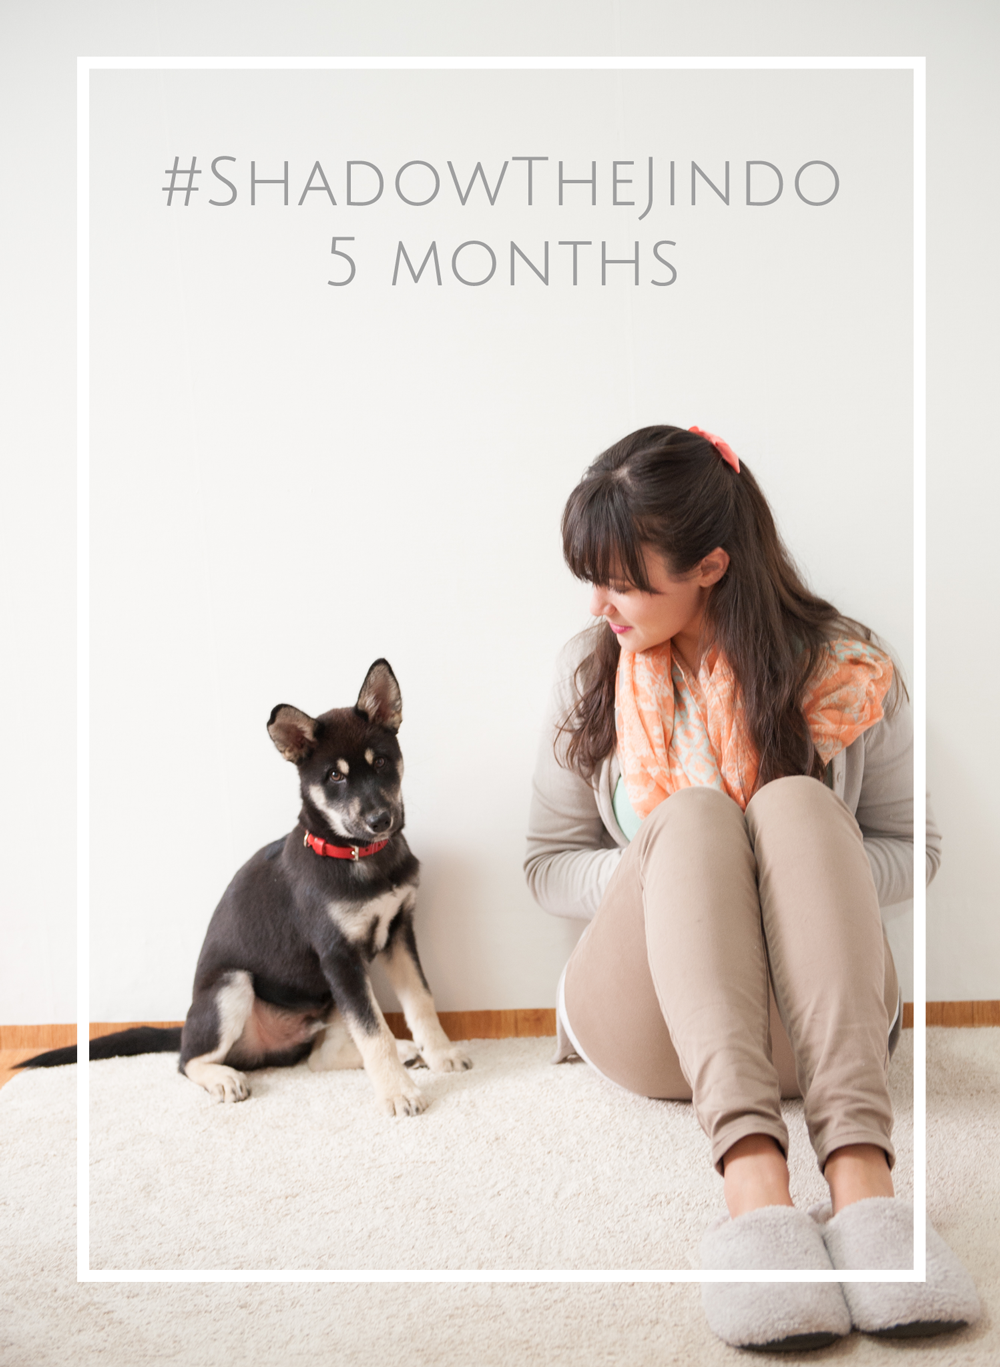 ShadowTheJindo5Months.png